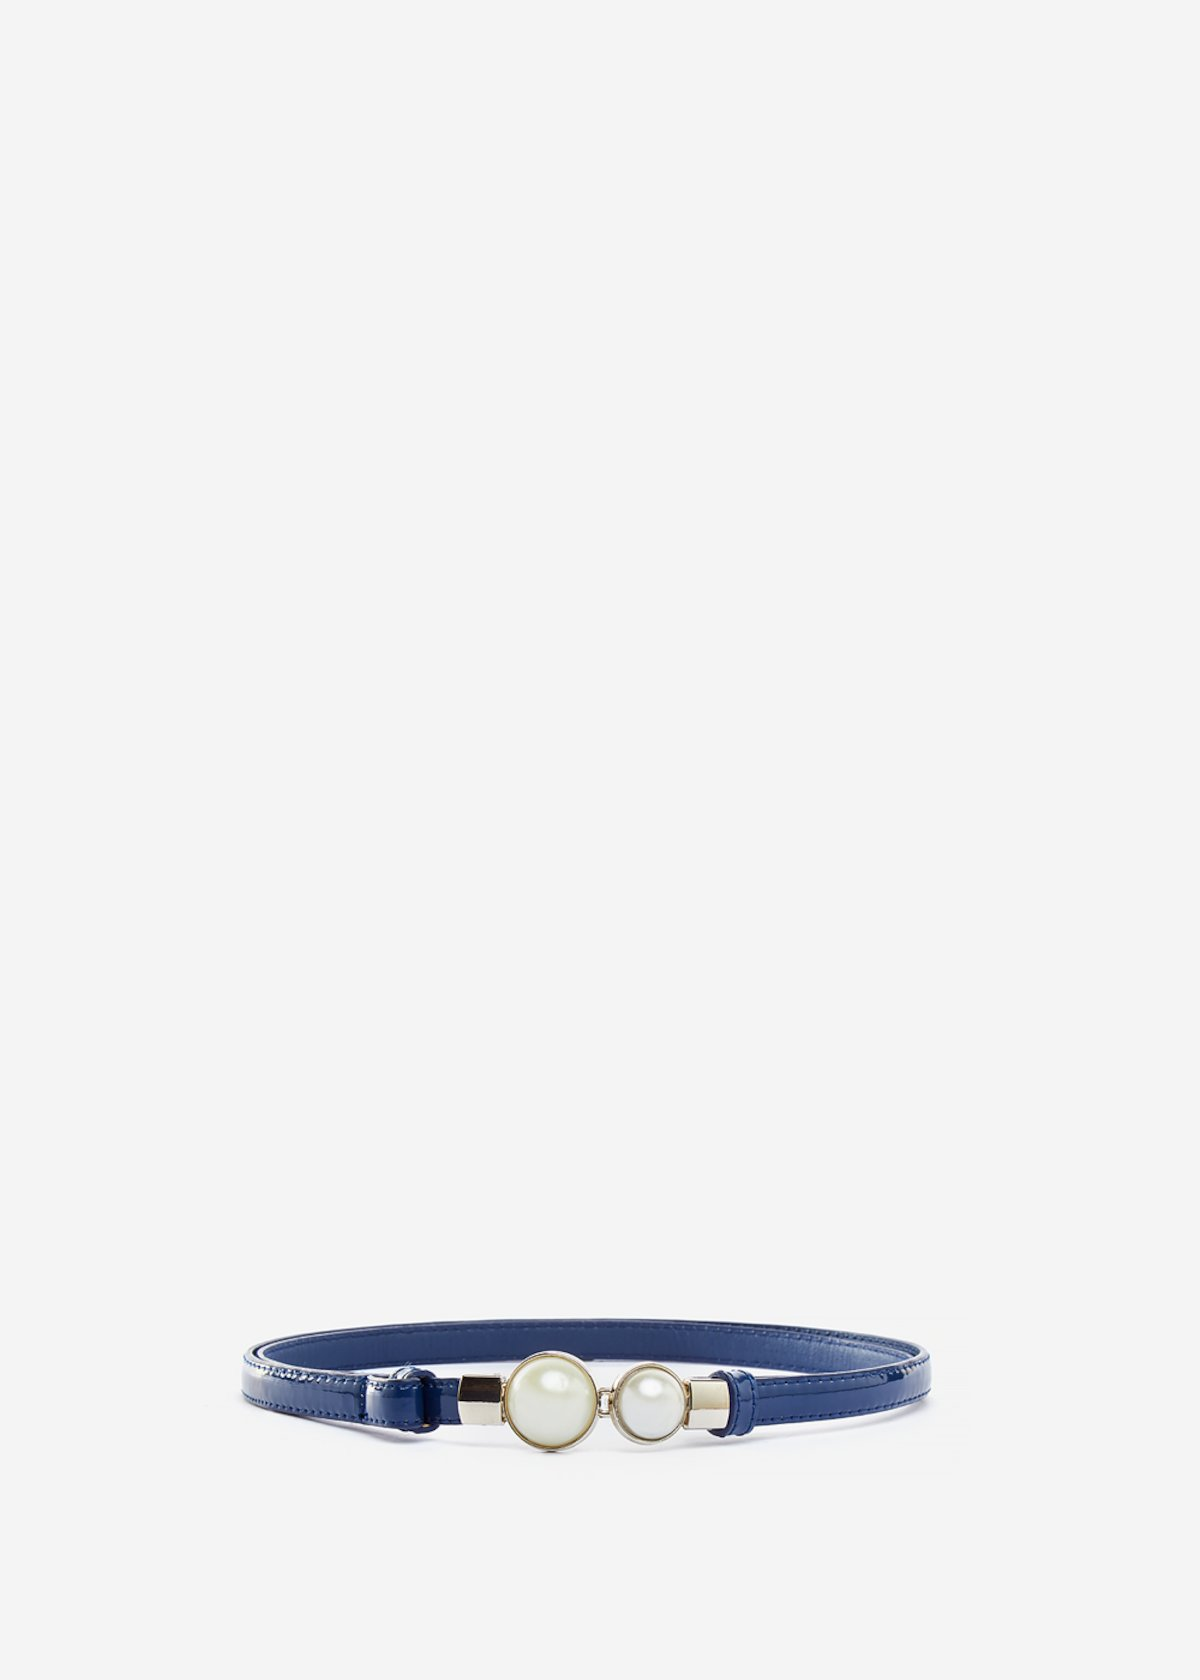 Faux-leather Carla belt with pearls detail - Blue